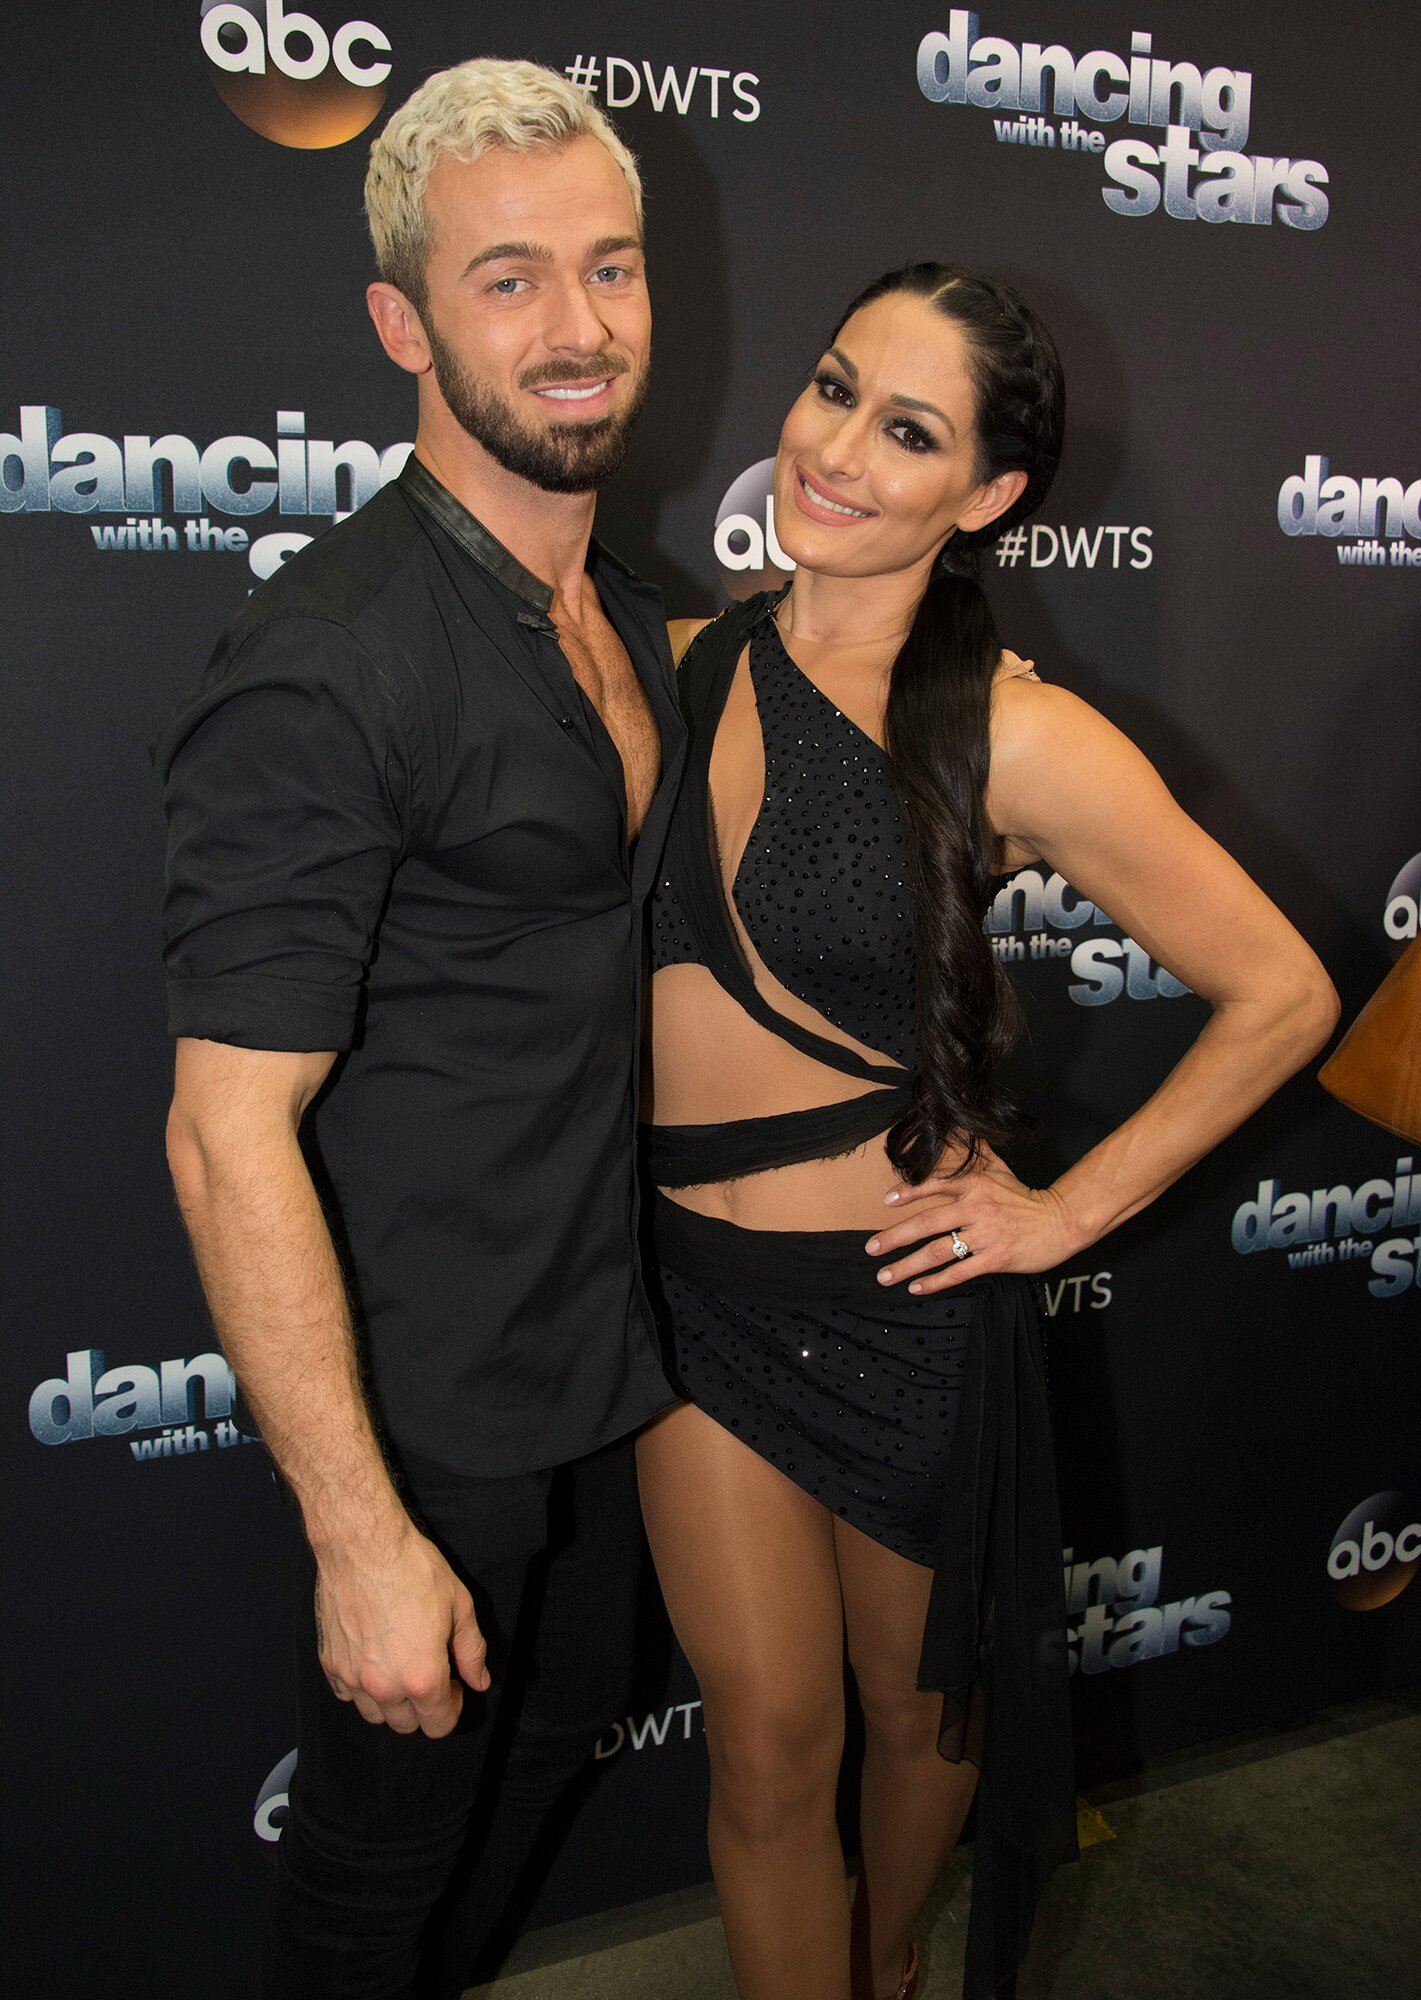 max dwts dating